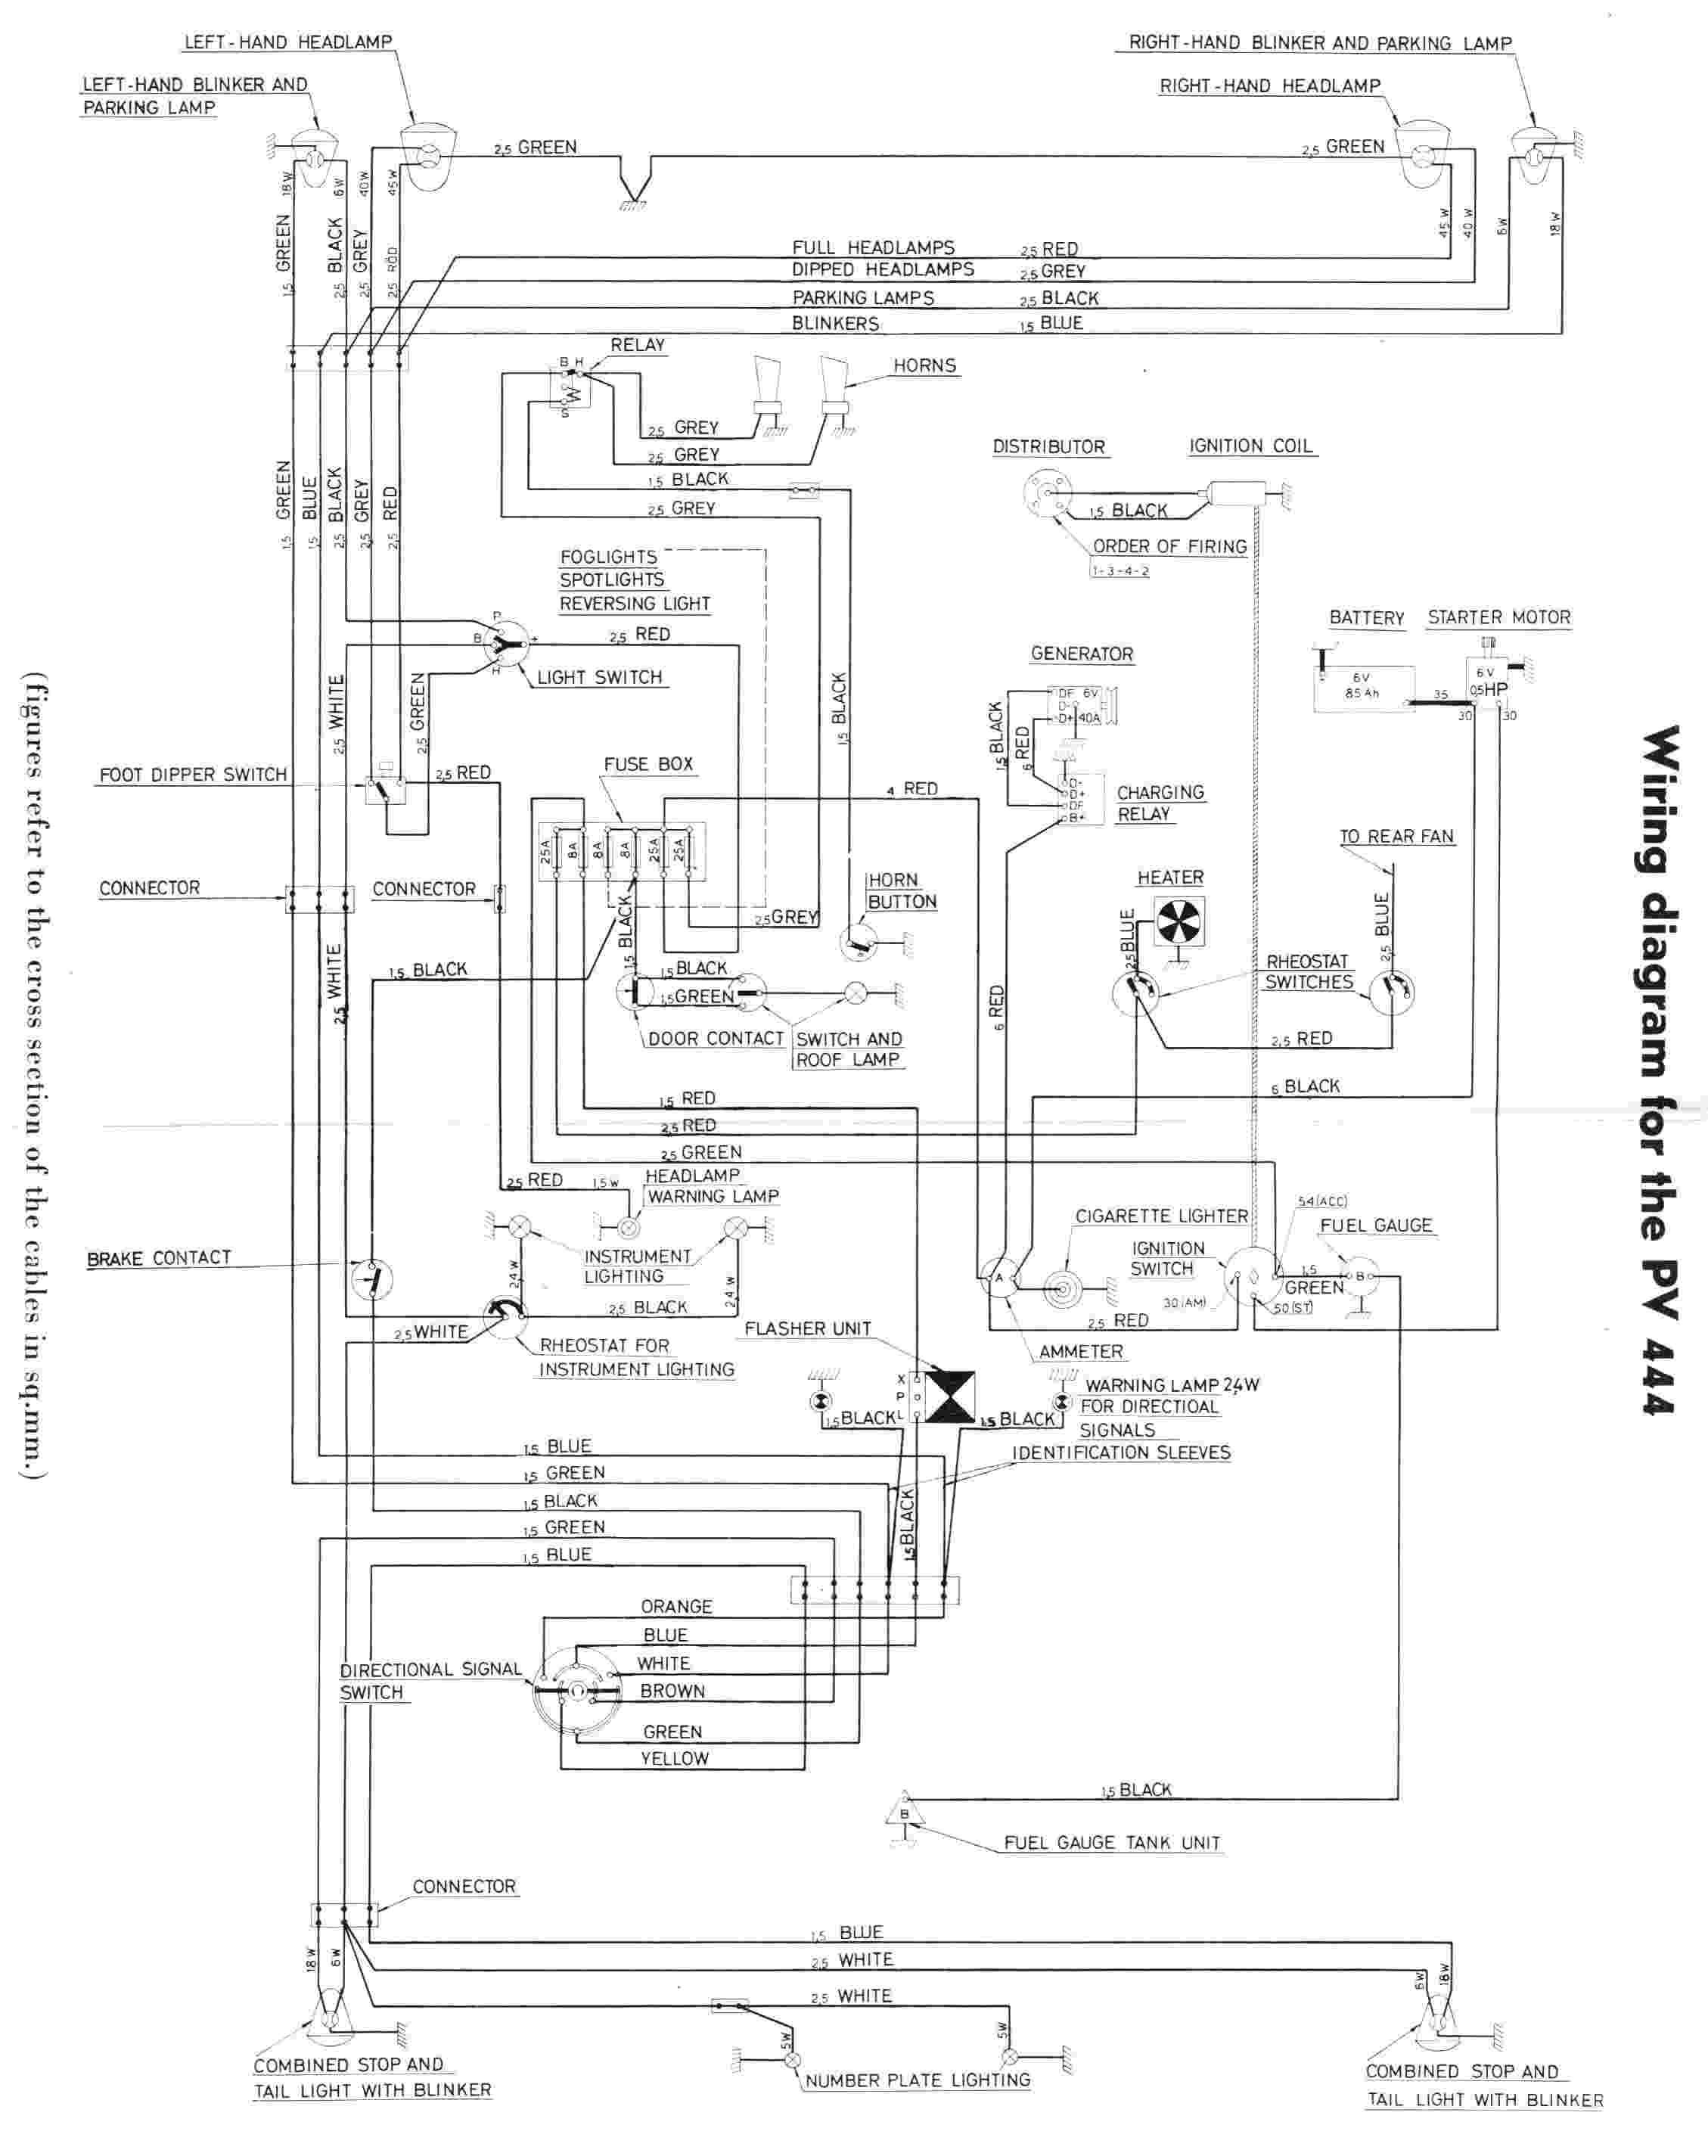 medium resolution of wg volvo truck wiring schematic